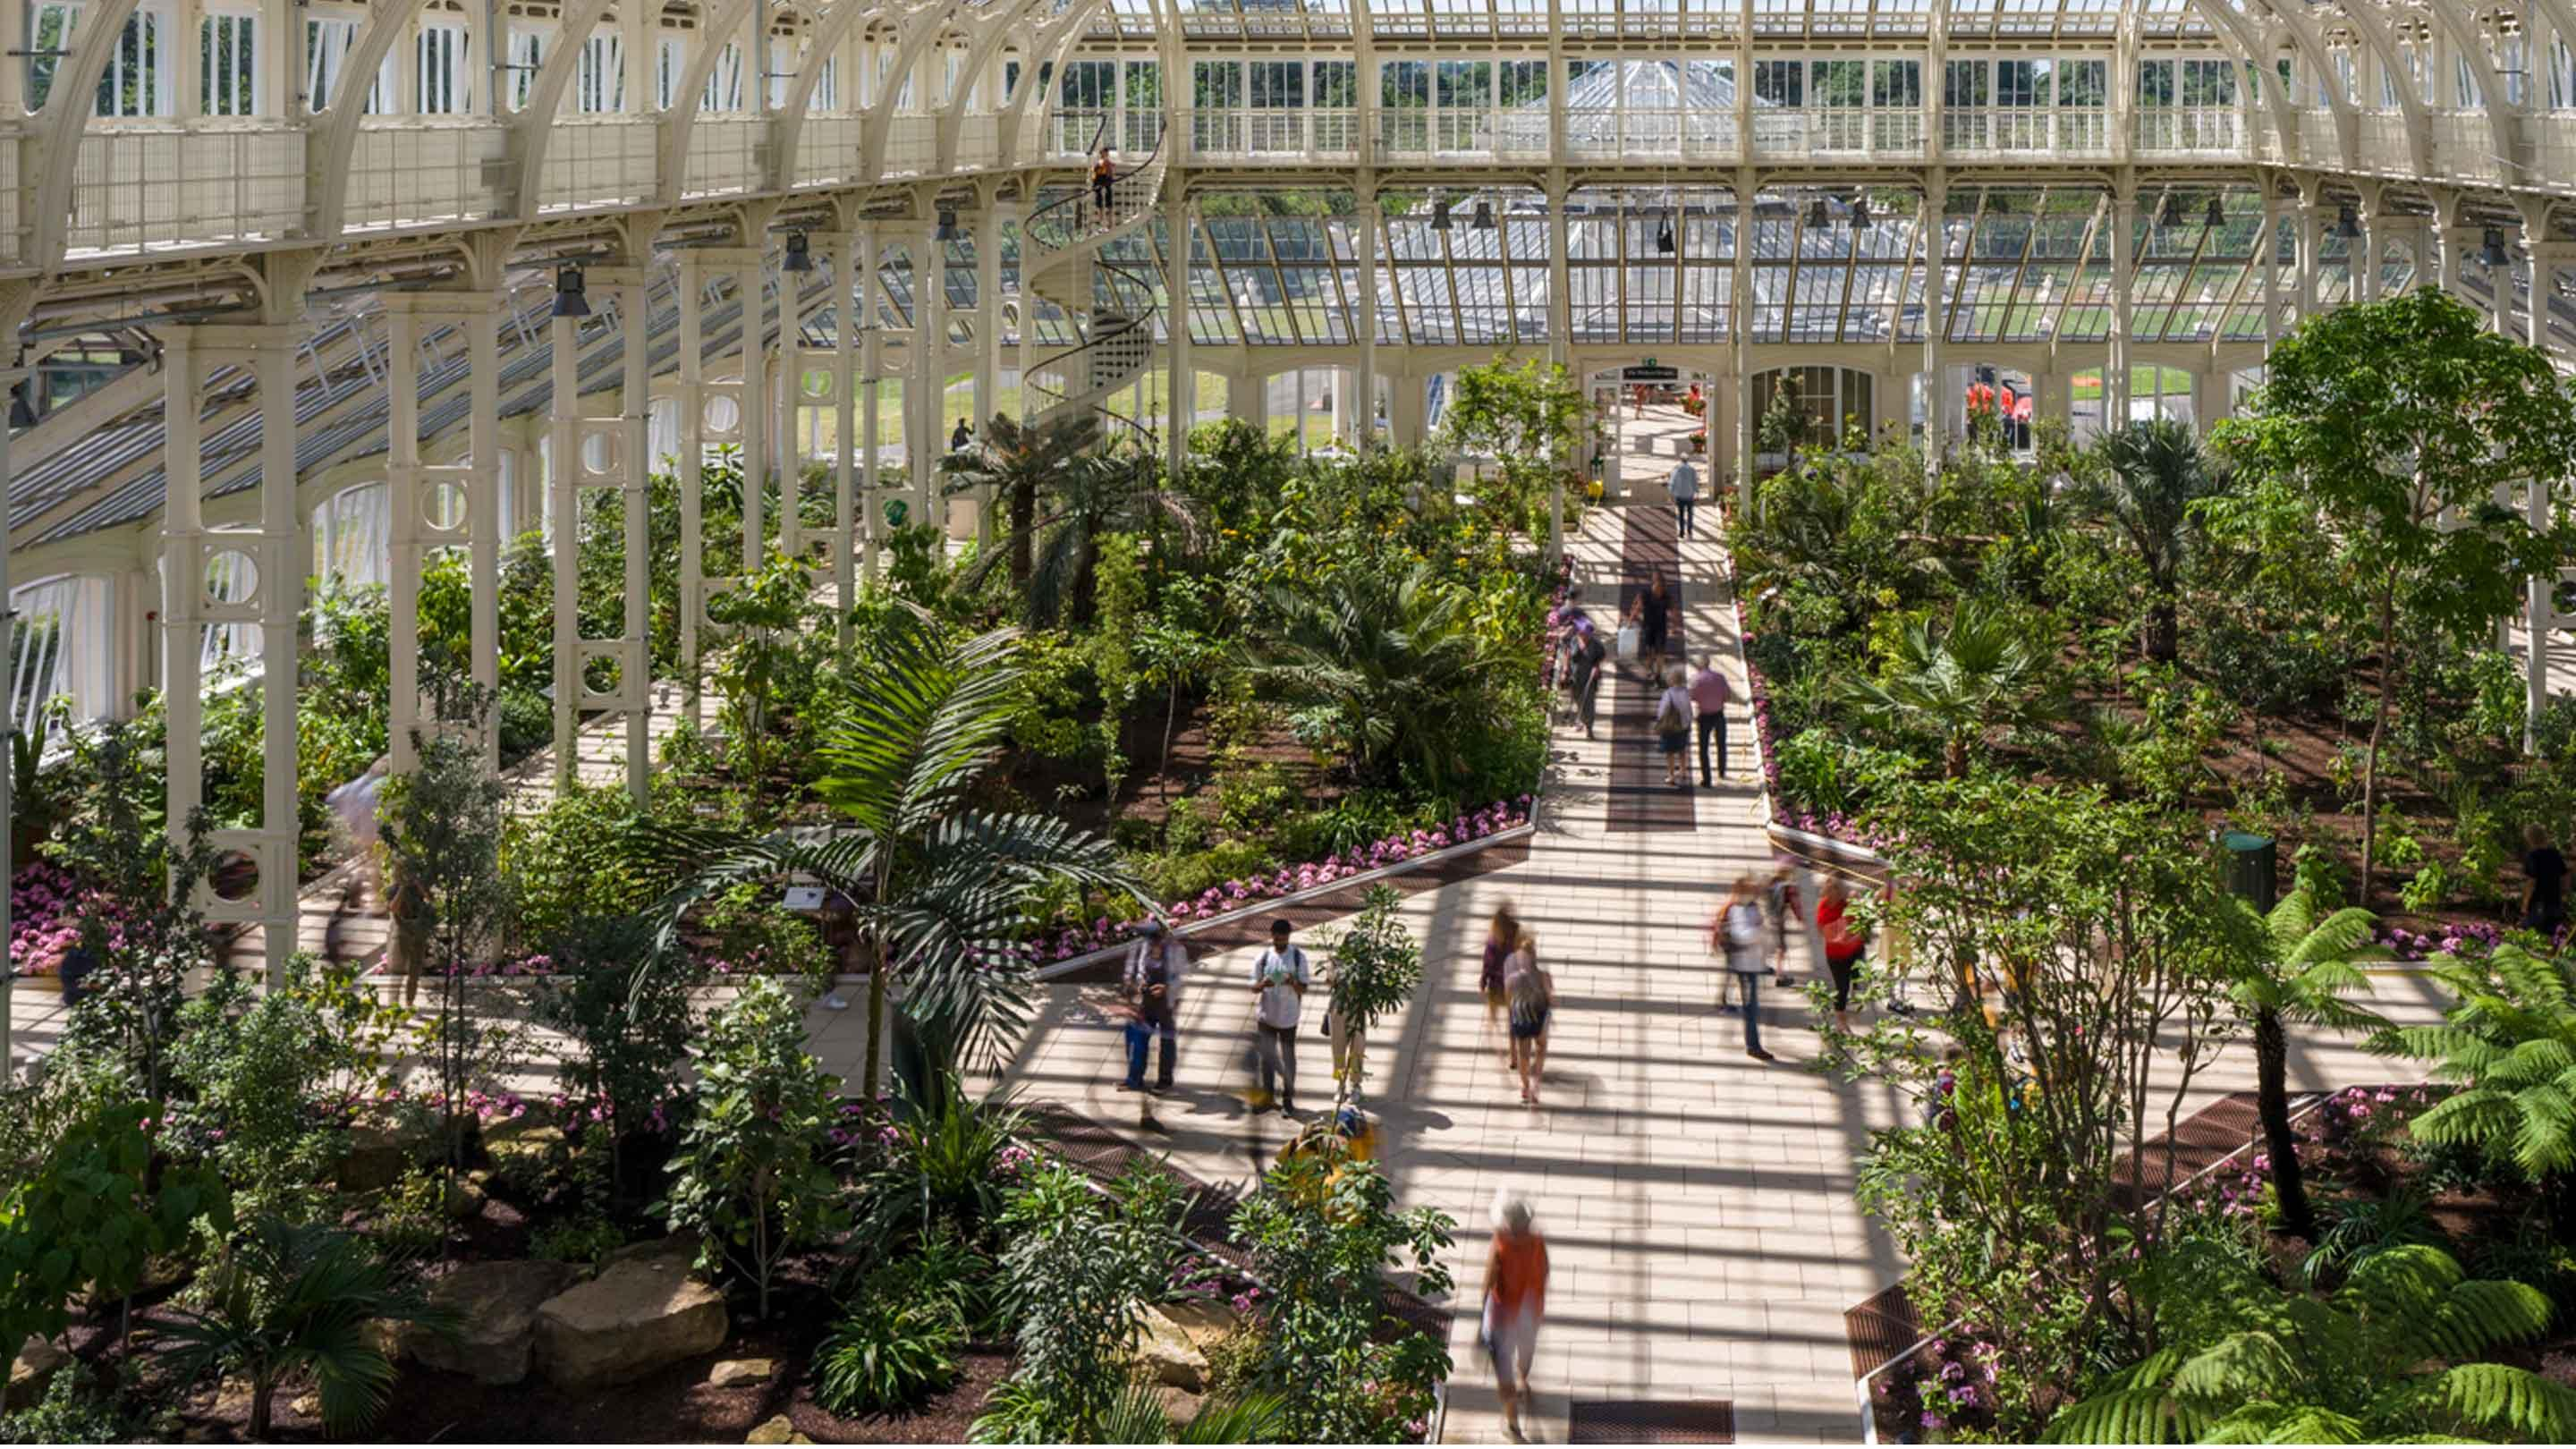 how to get to kew gardens by train